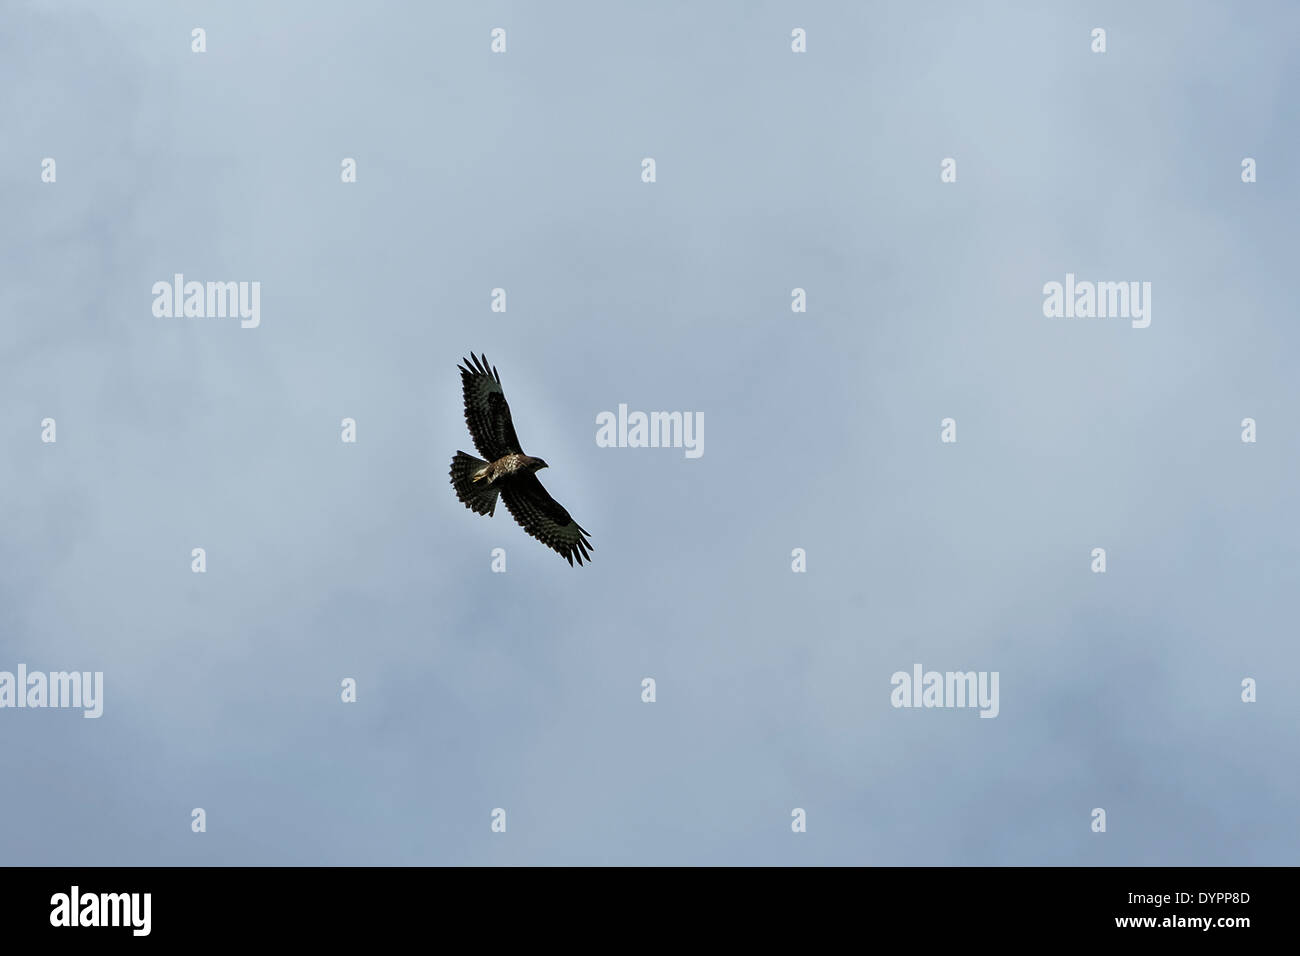 SIngle buzzard gliding with outstretched wings, almost silhouetted against blue-grey clouds, from below; landscape format. - Stock Image